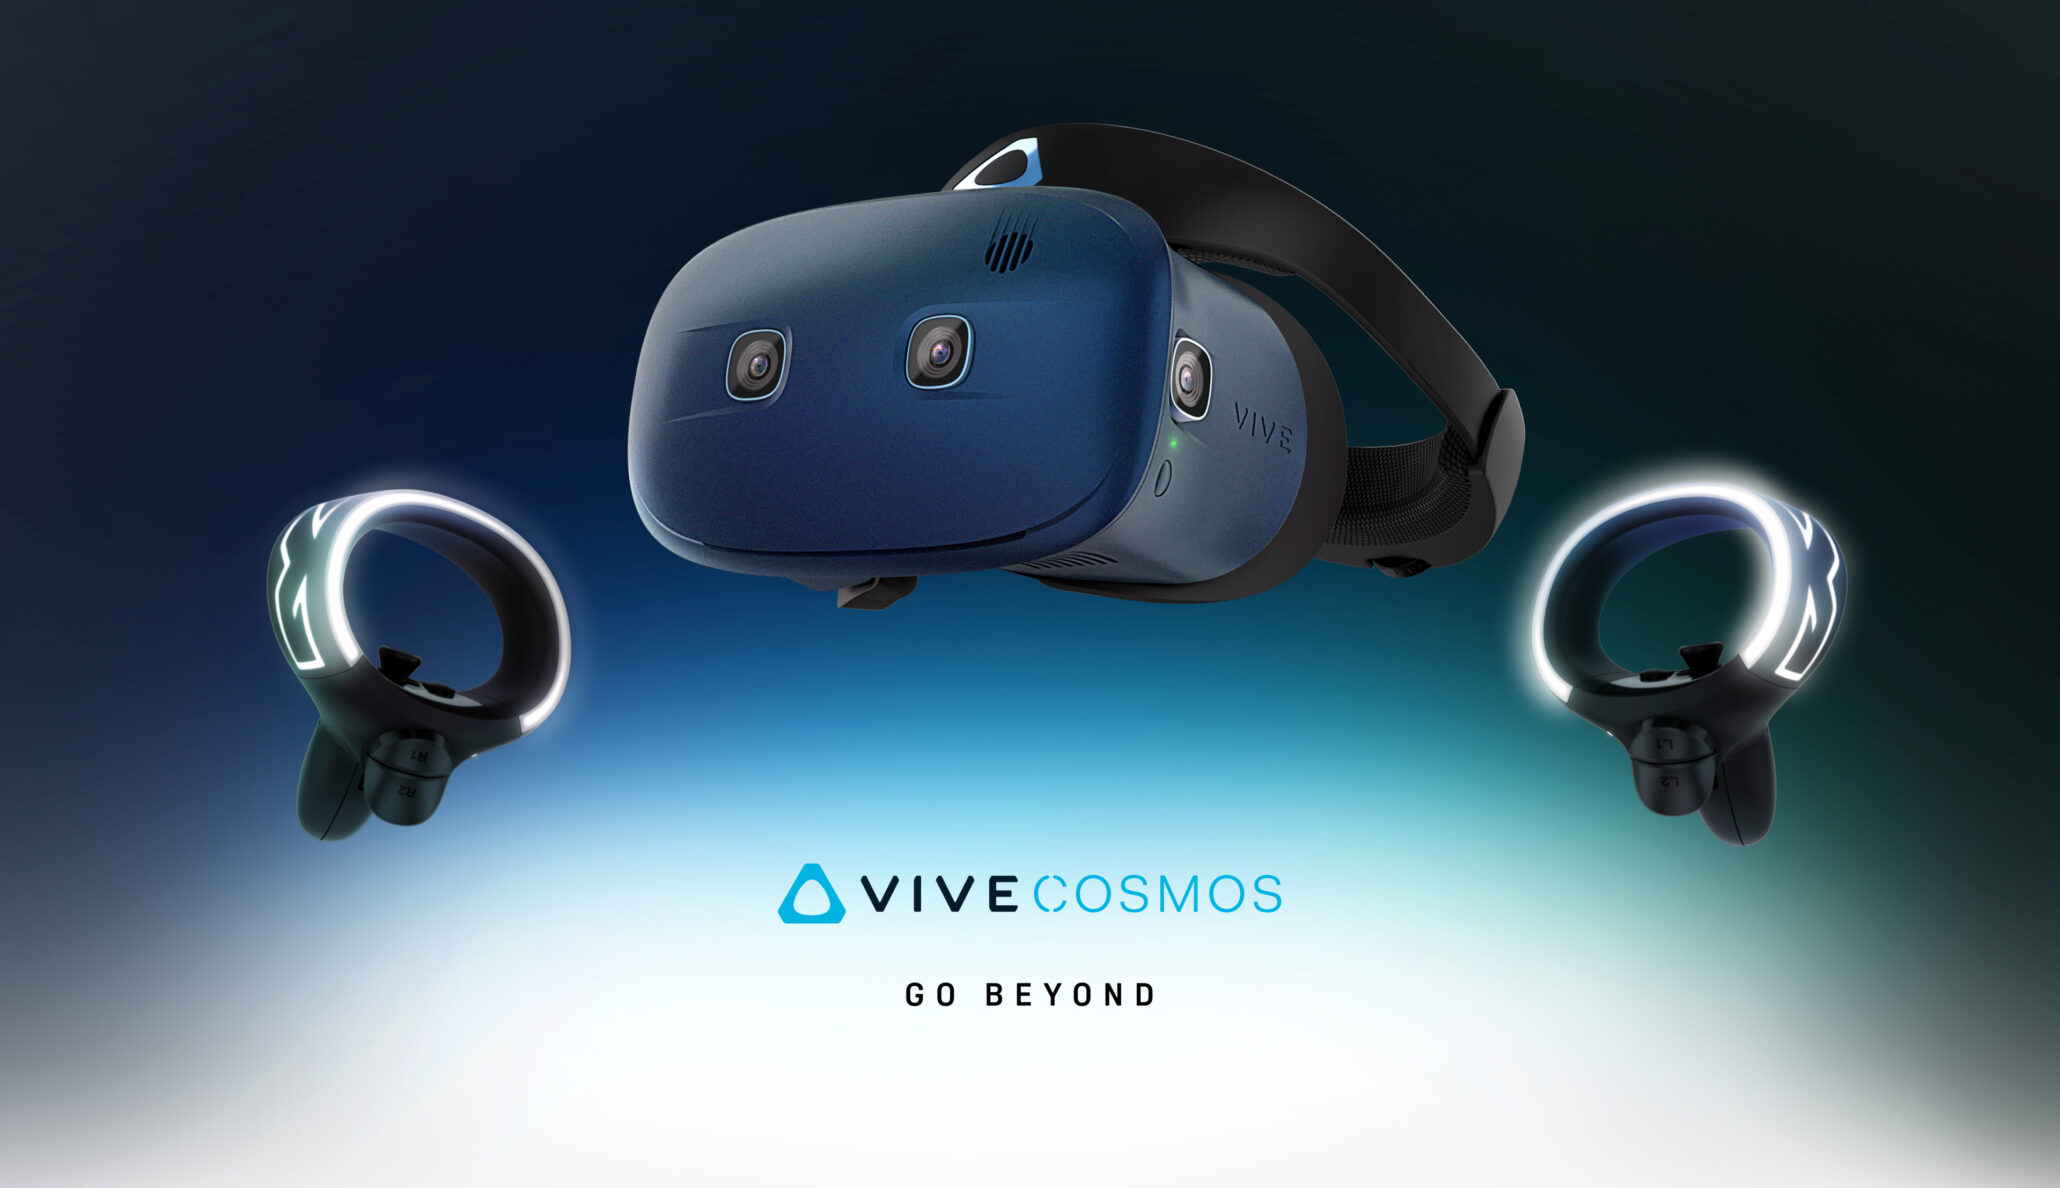 VIVE Cosmos Announced as a Portable VR Headset, While VIVE Pro Gets